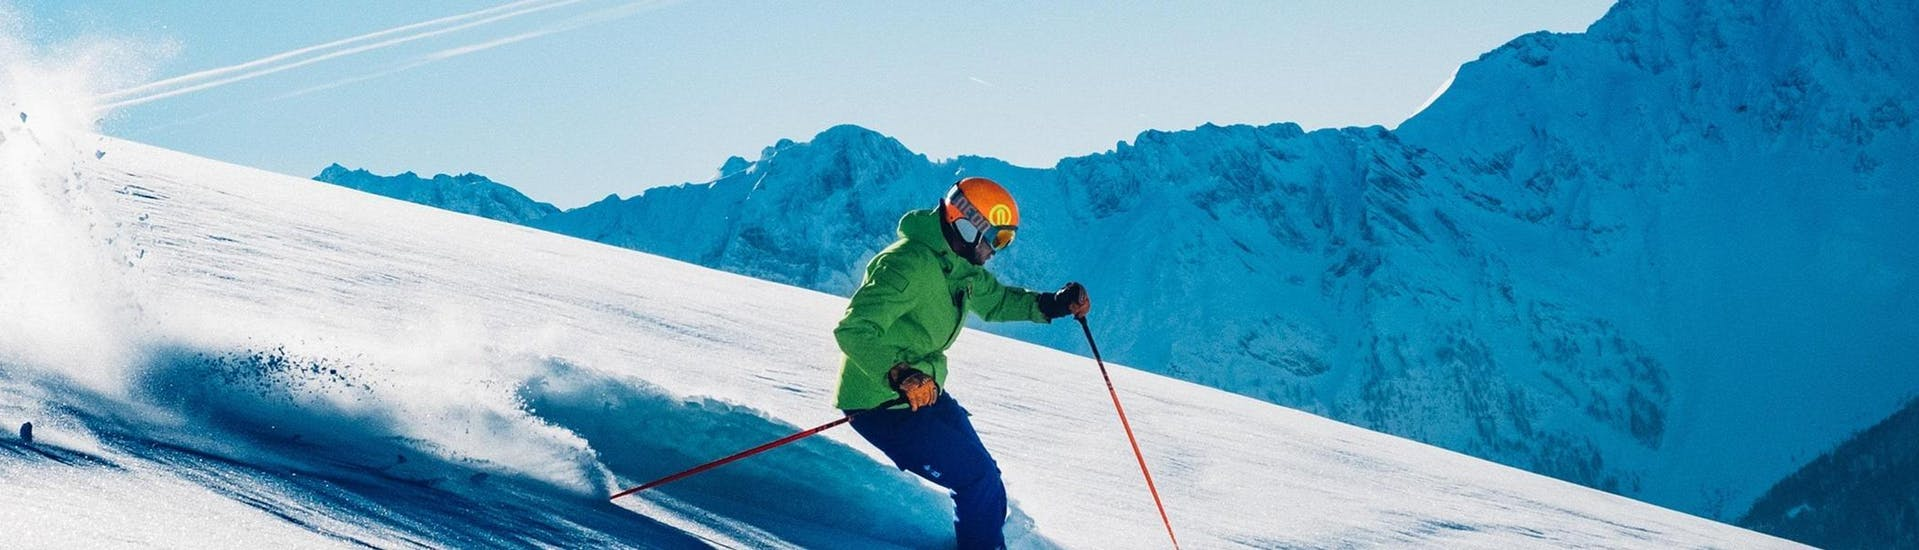 Under the supervision of an experienced instructor from the ski school Scuola di Sci B.foxes, a skier is about to try out some new freestyle tricks during the Private Freestyle Skiing Lessons - For Adults - Christmas.